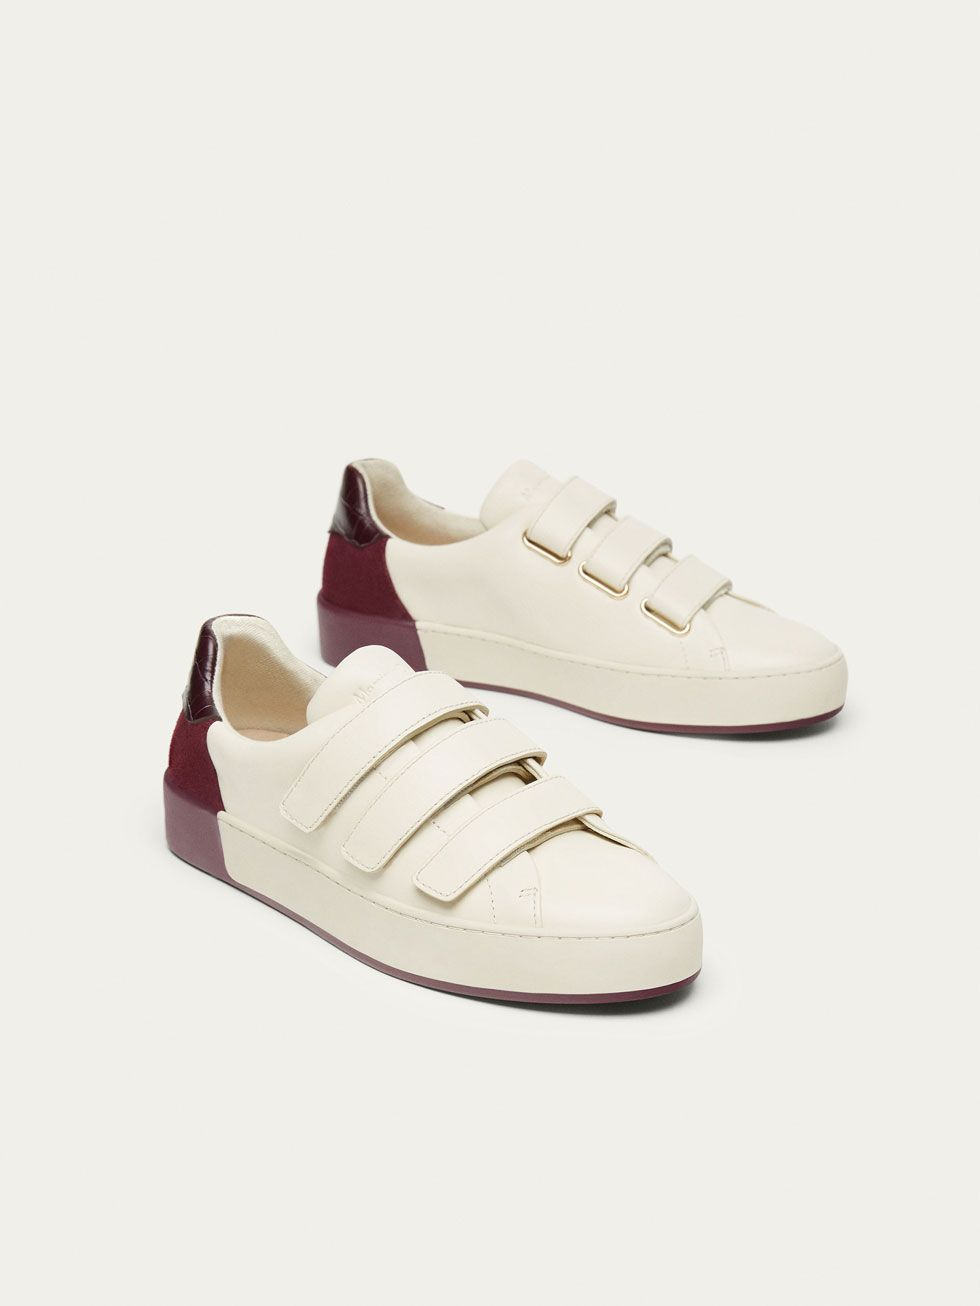 Fall Winter 2017 Women S Burgundy Sneakers With Leather Heel At Massimo Dutti For 79 5 Effortless Elegance Burgundy Sneakers Leather Heels Sneakers